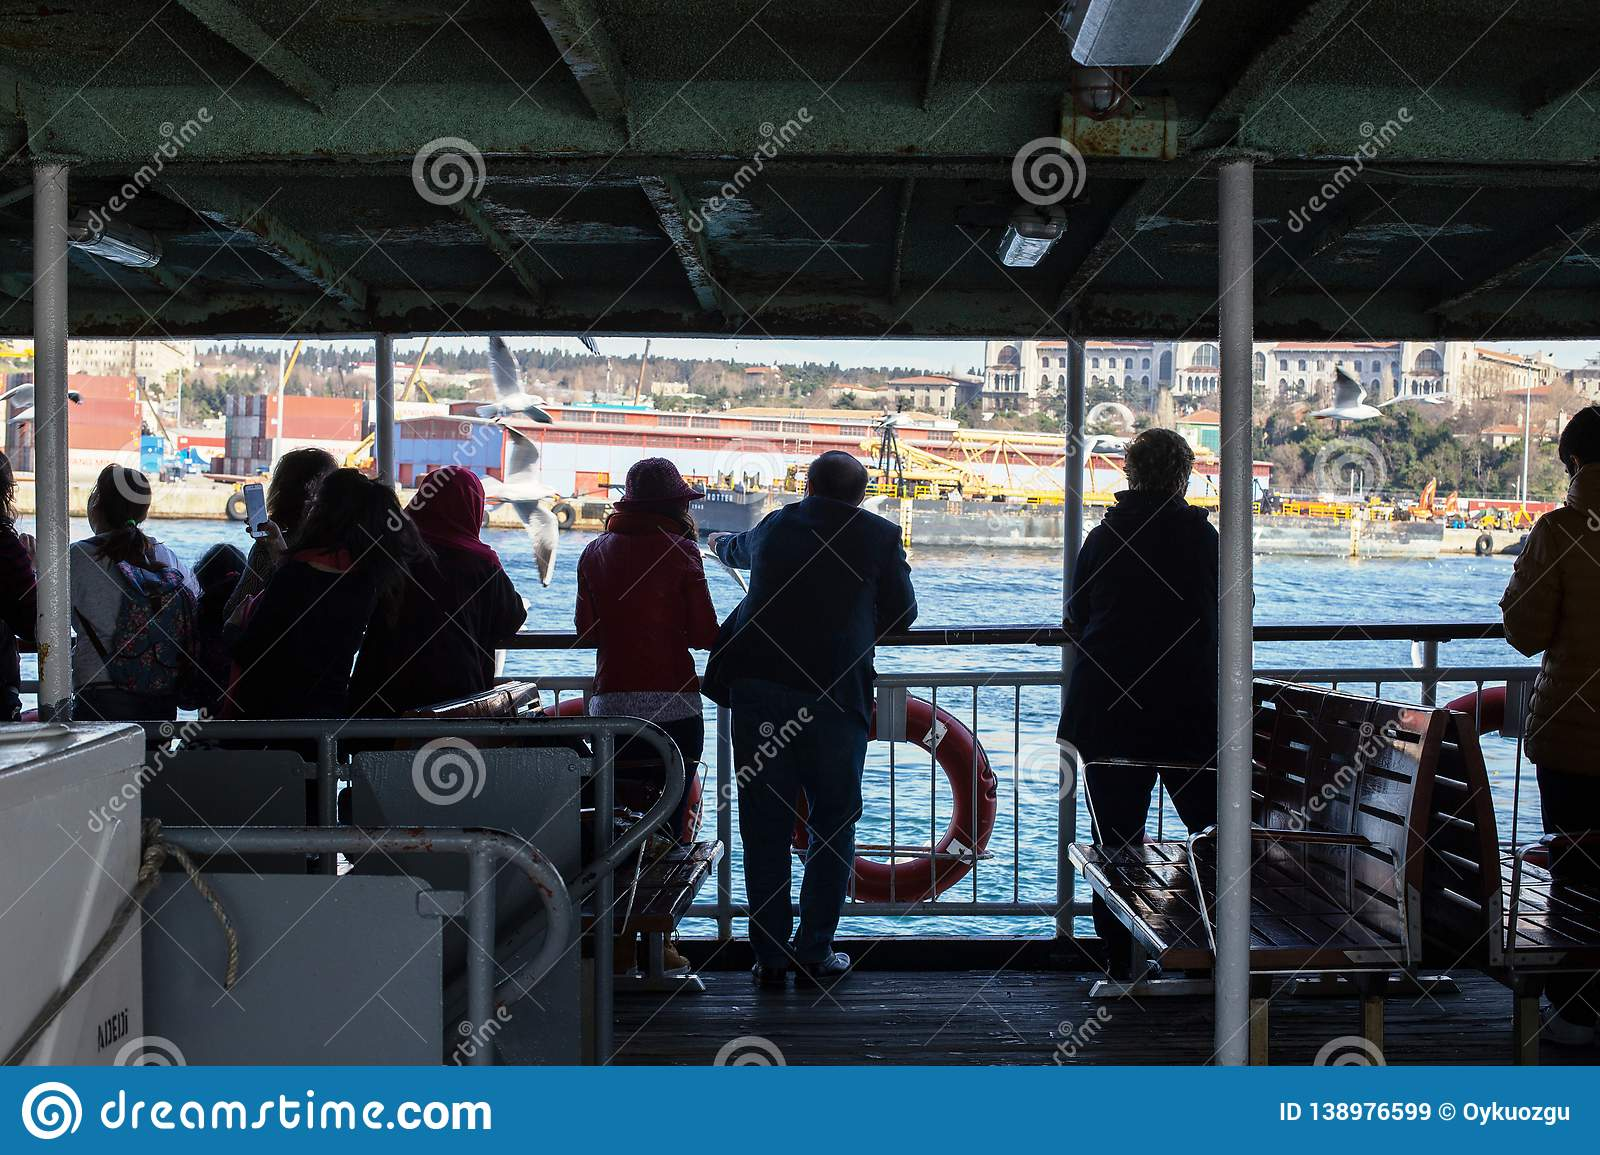 Island Ferry Ada Vapuru. Some of the ferry passengers feed seagulls. Passenger ferryboats from Istanbul sail regularly to the Pr. Istanbul / Turkey - 02/03/2016 royalty free stock images